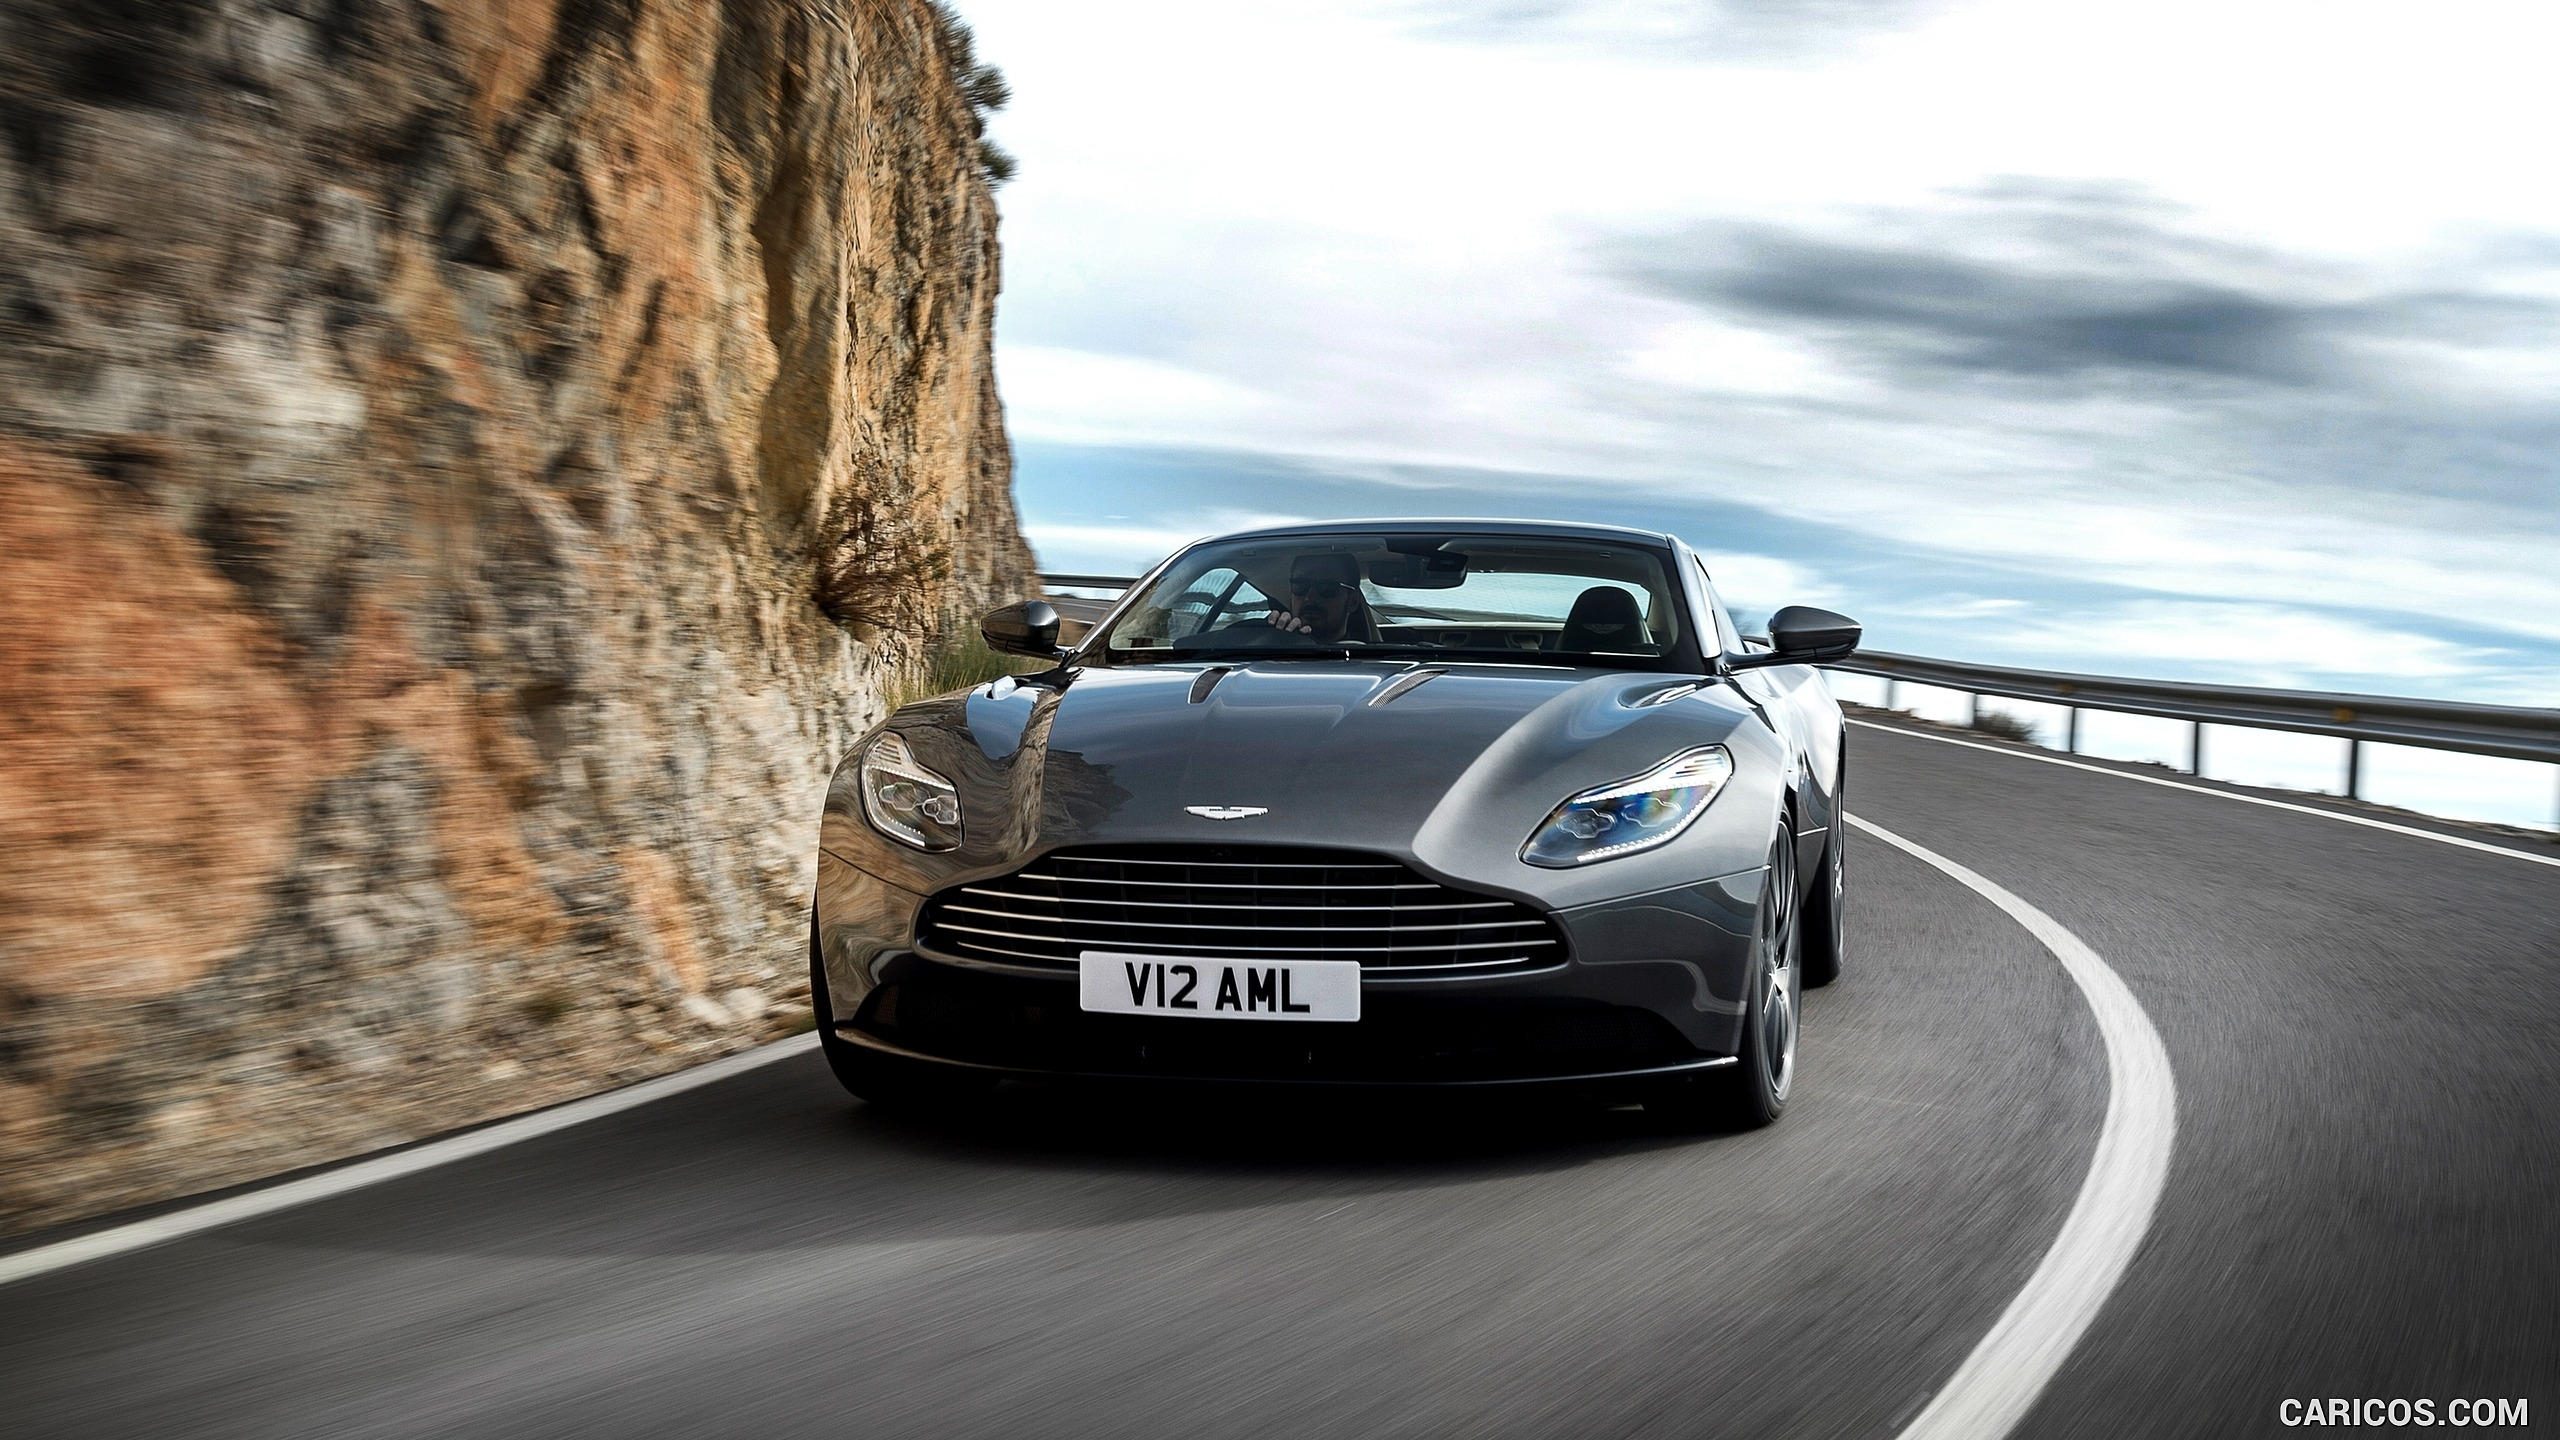 2017 aston martin db11 - front | hd wallpaper #3